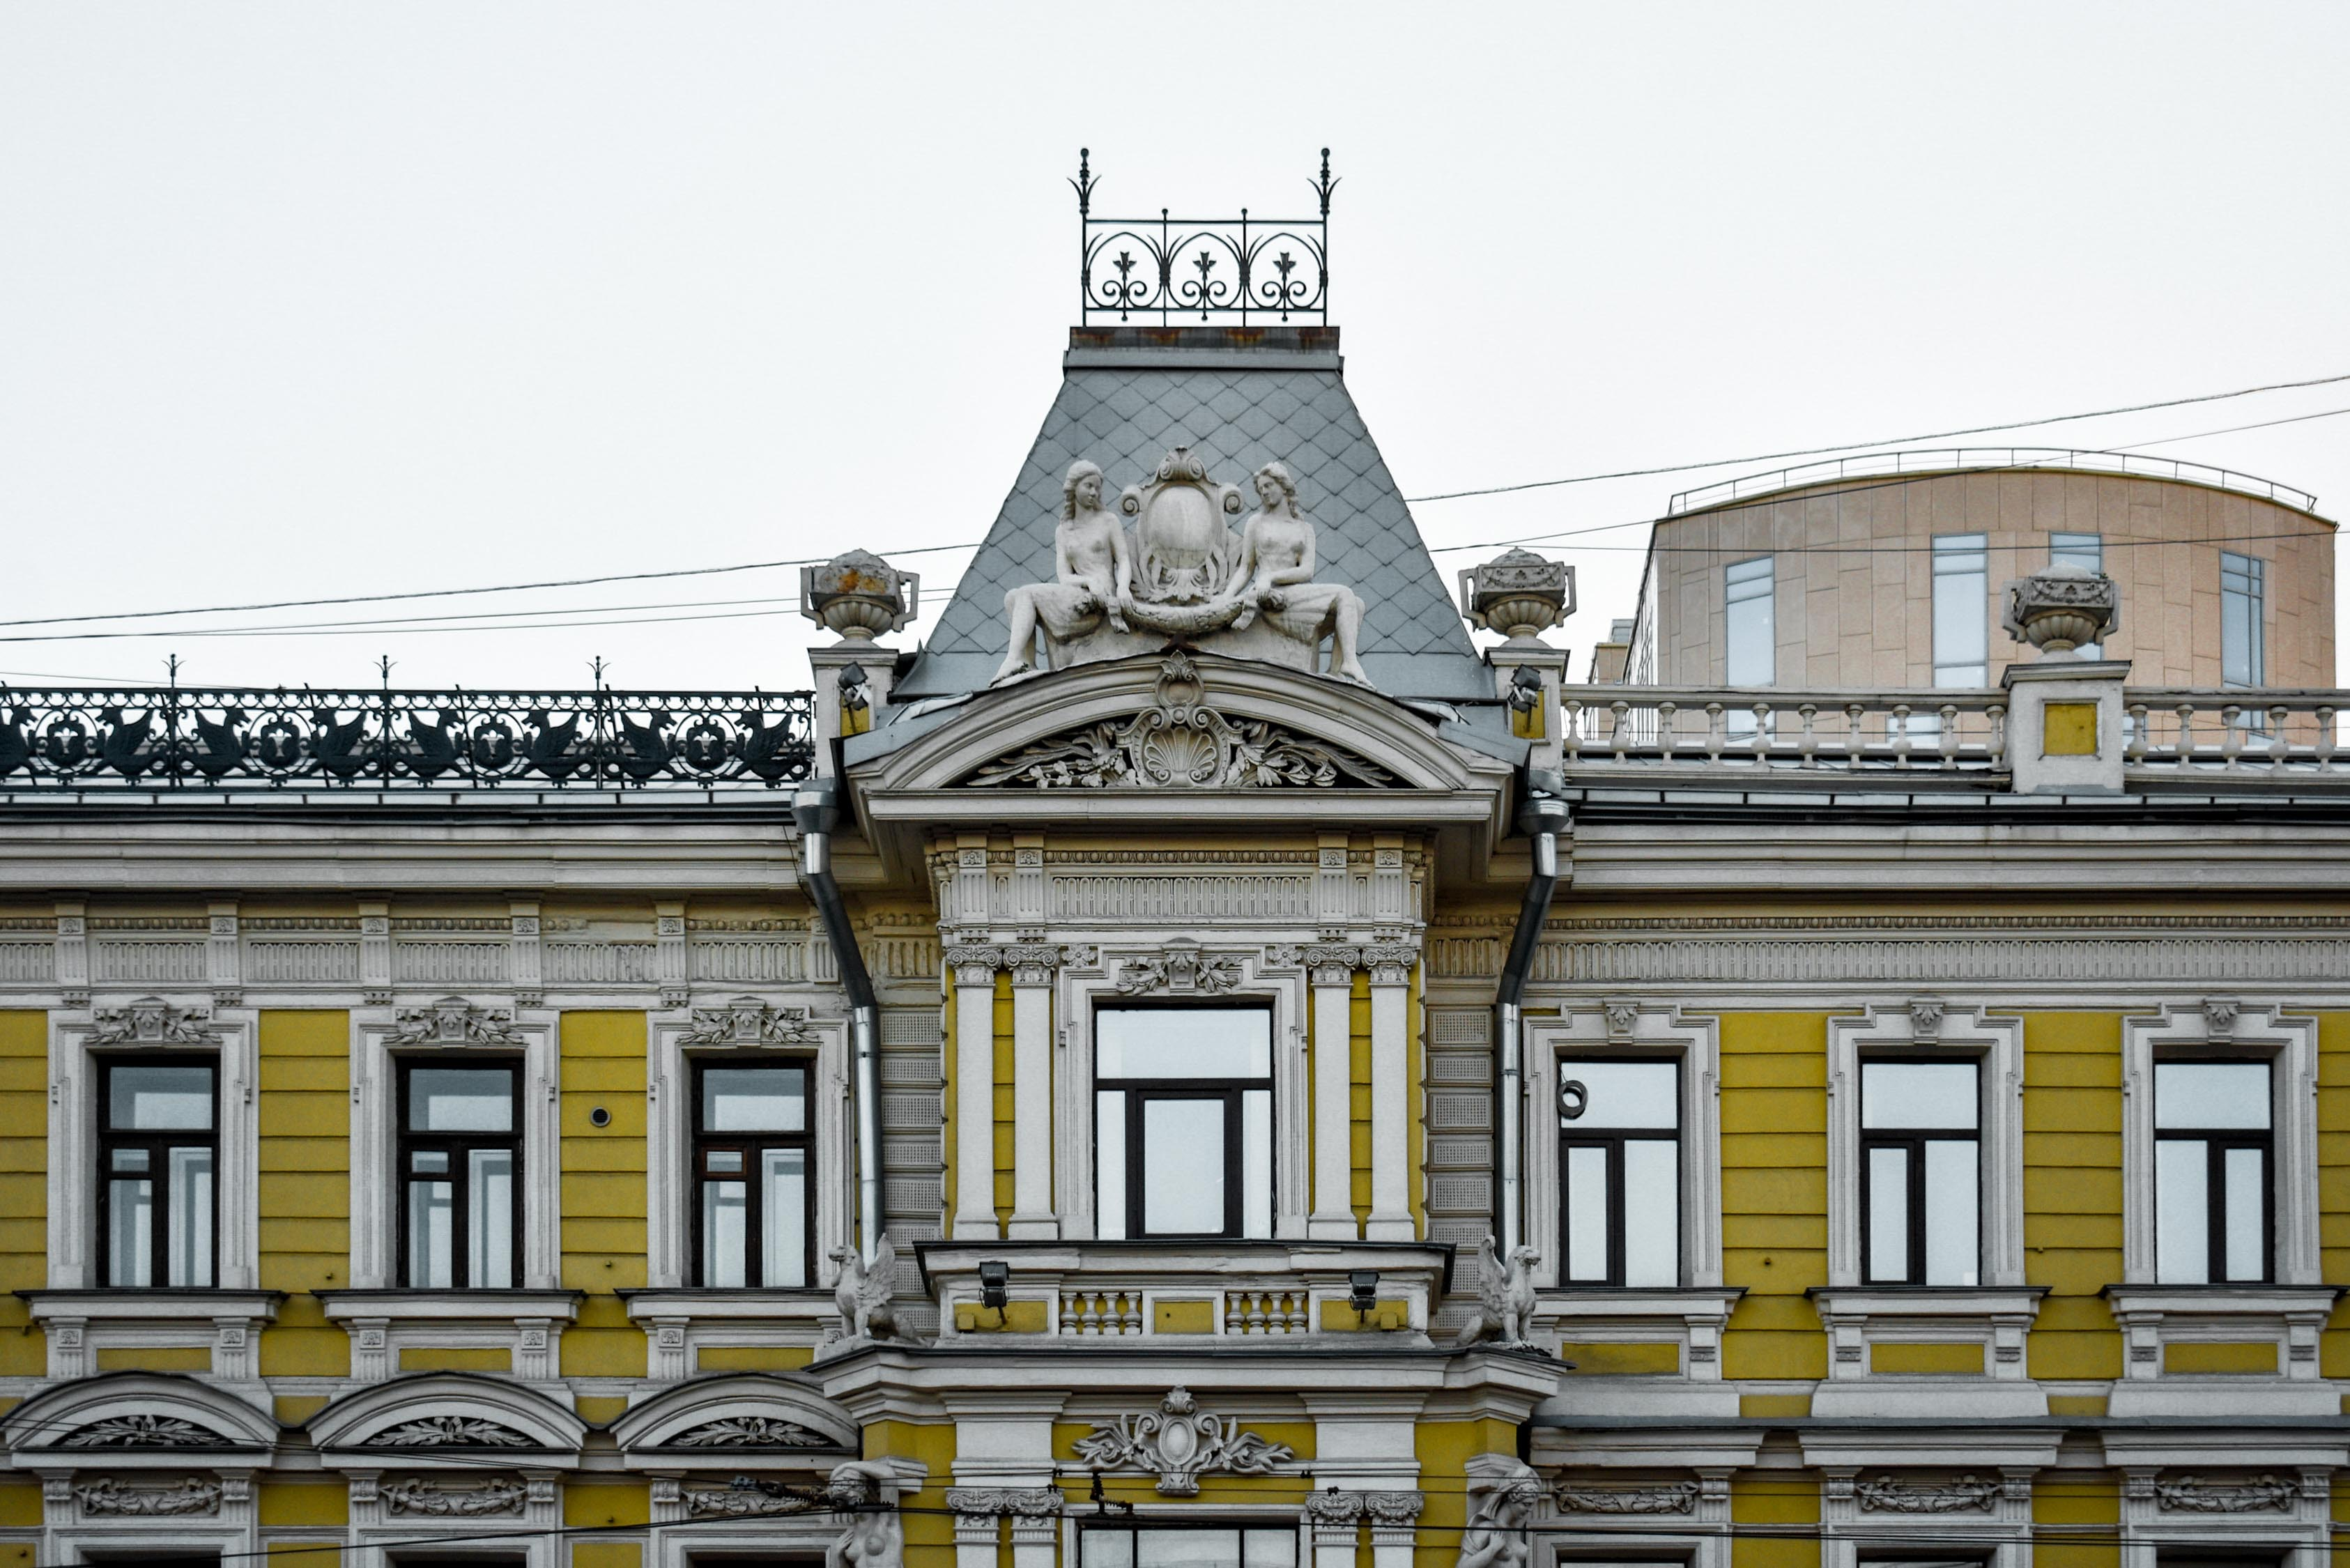 gray and yellow concrete building during daytime